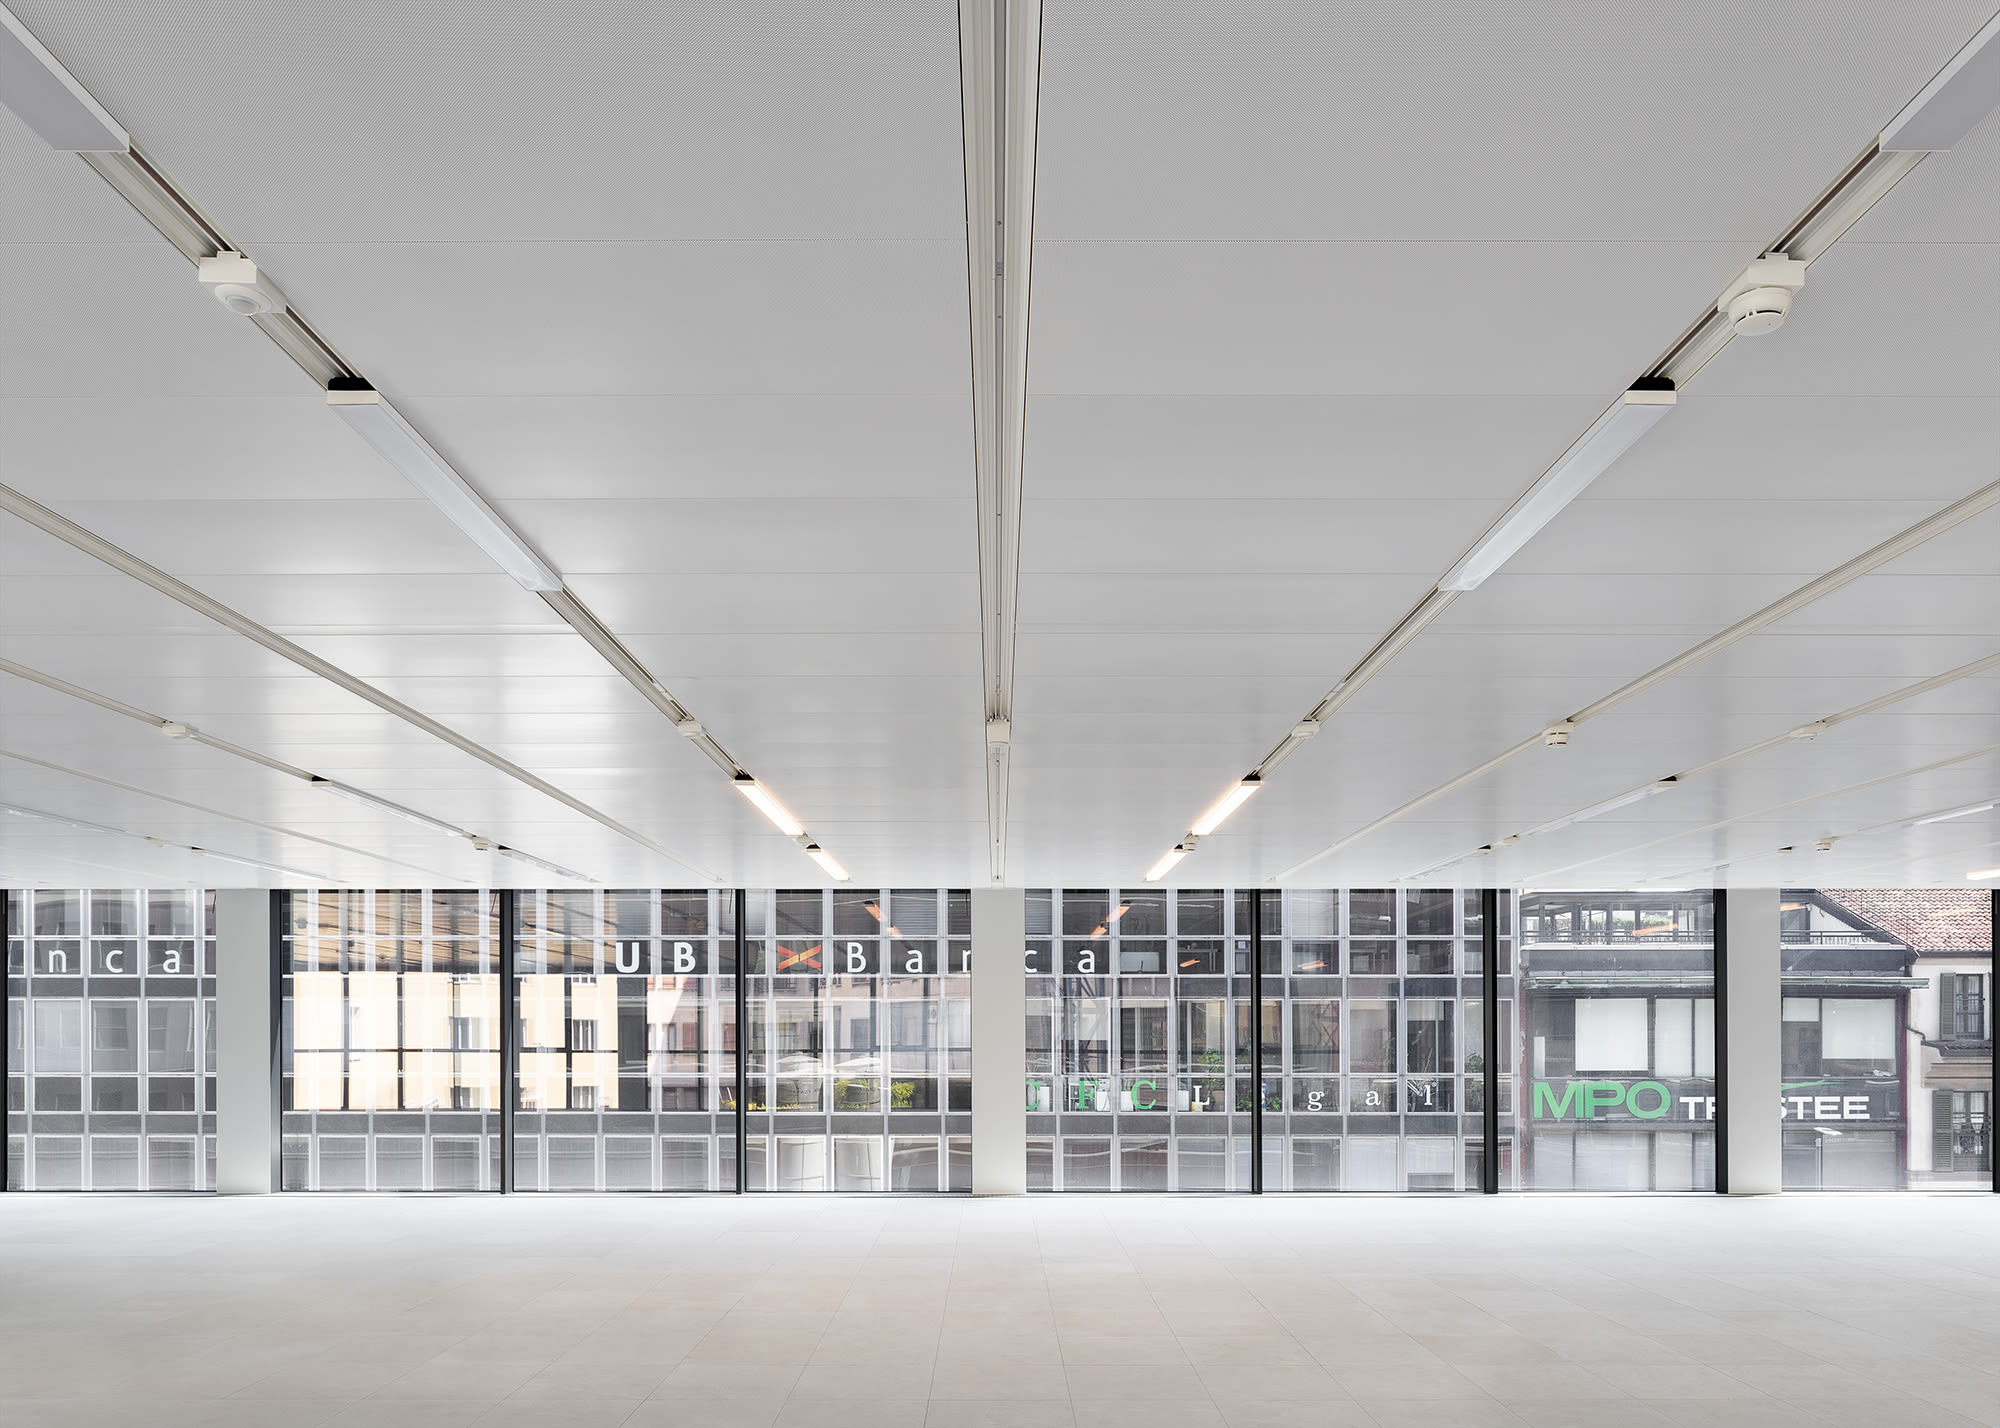 Antonio Citterio Patricia Viel offers a glimpse of tomorrow's working space